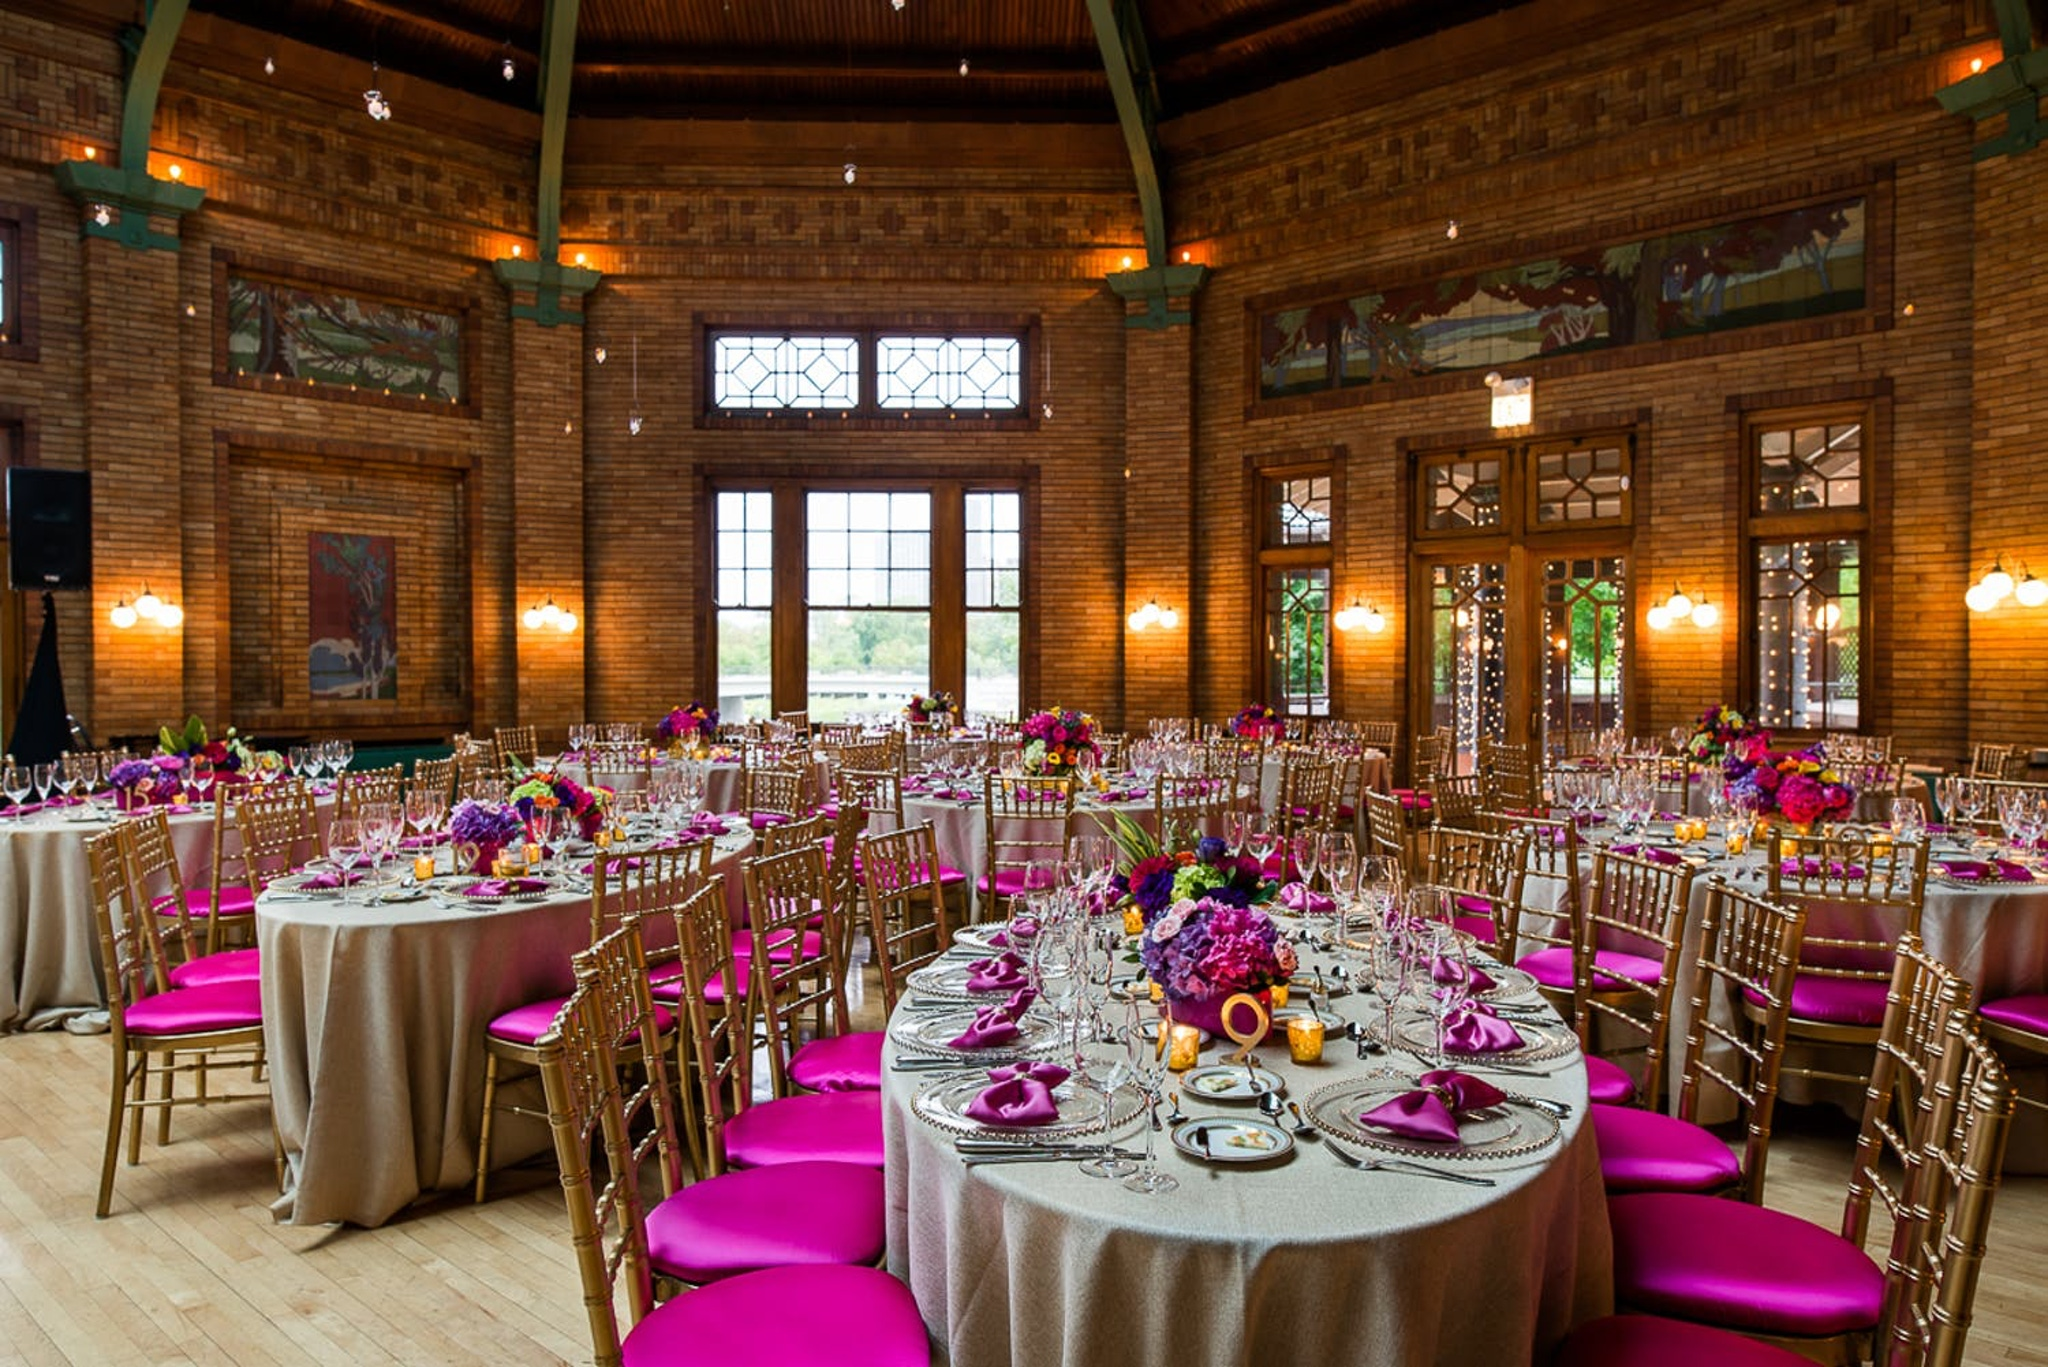 Wedding with pink chair covers and napkins